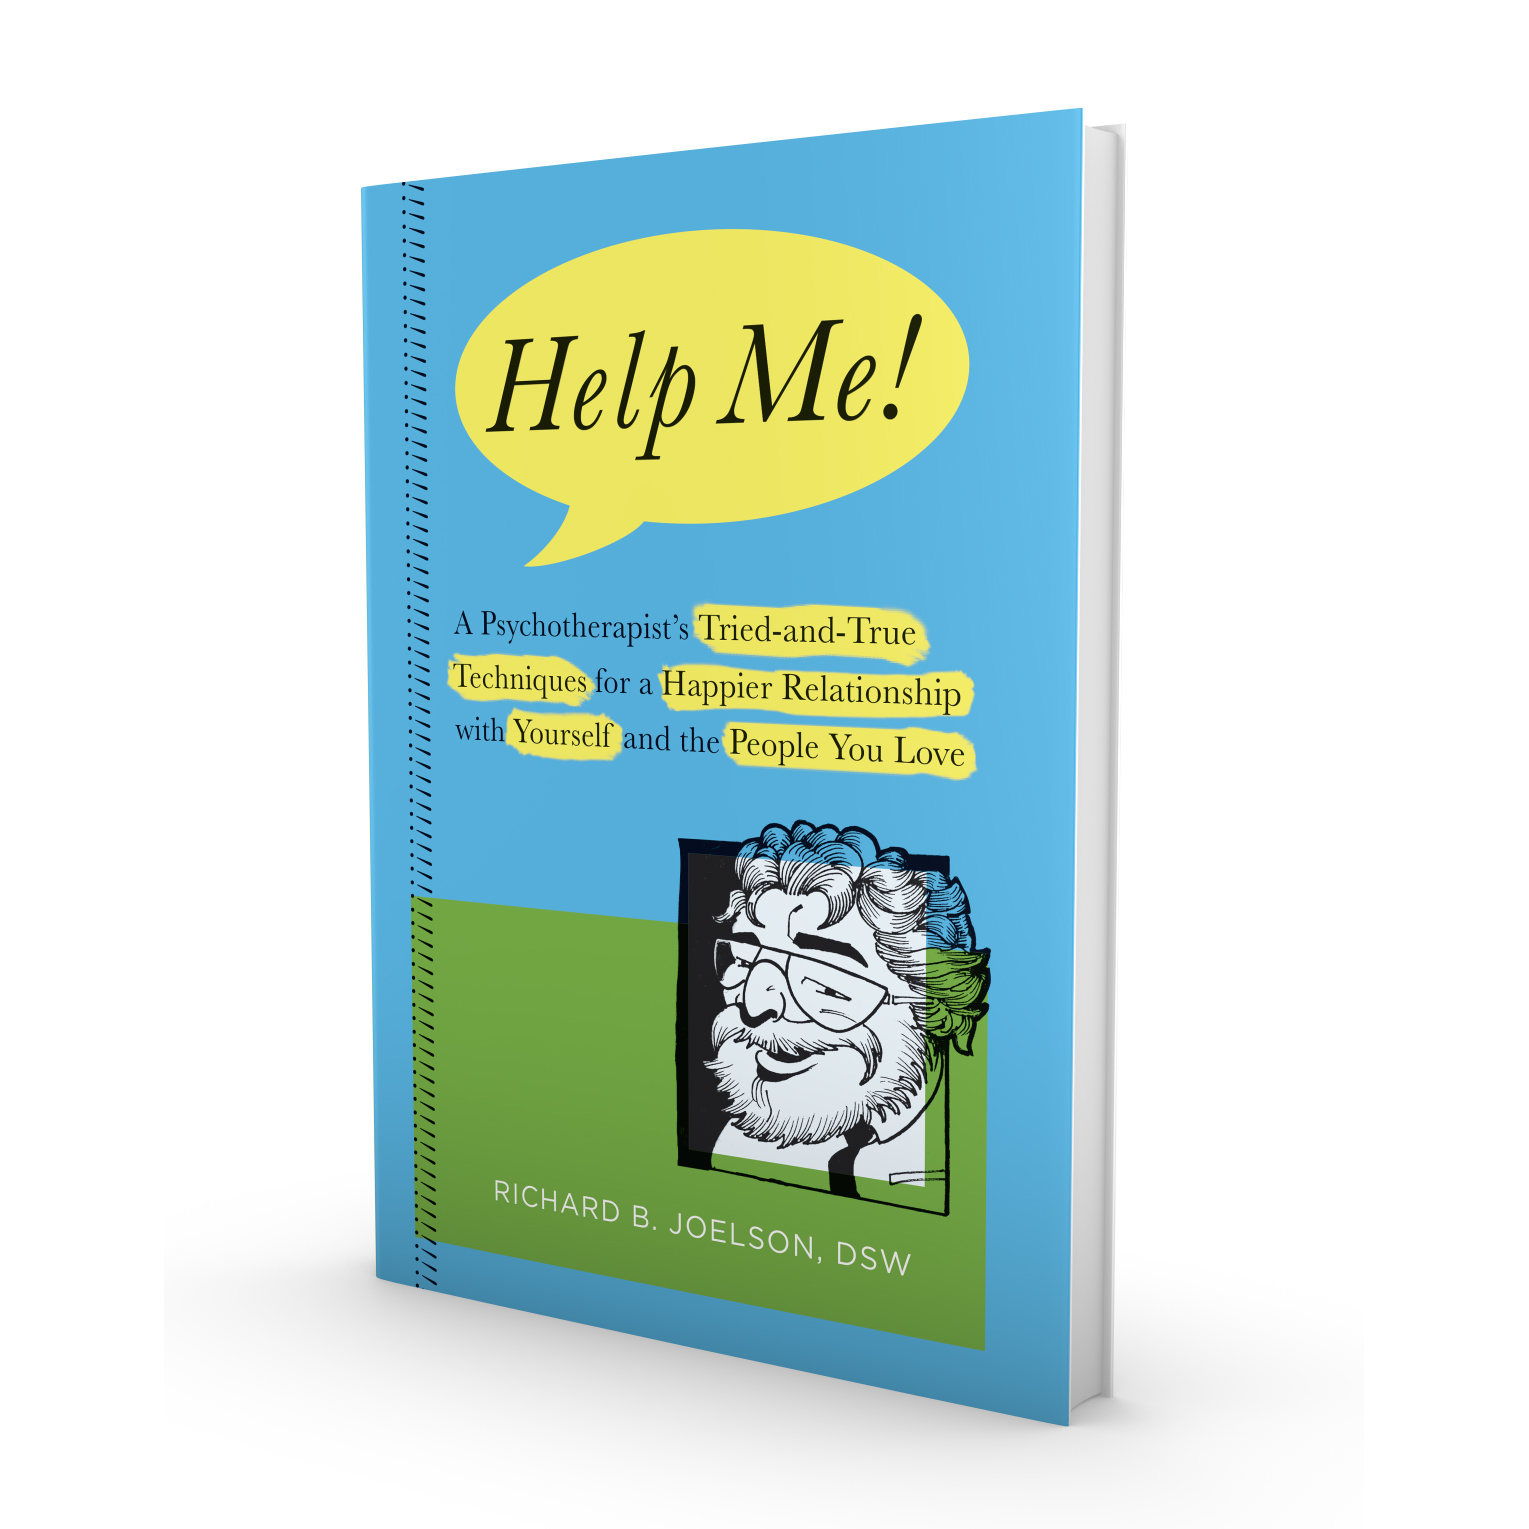 marriage self help book reviews Ebooks - category: self-help - download free ebooks or read books online for free discover new authors and their books in our ebook community.